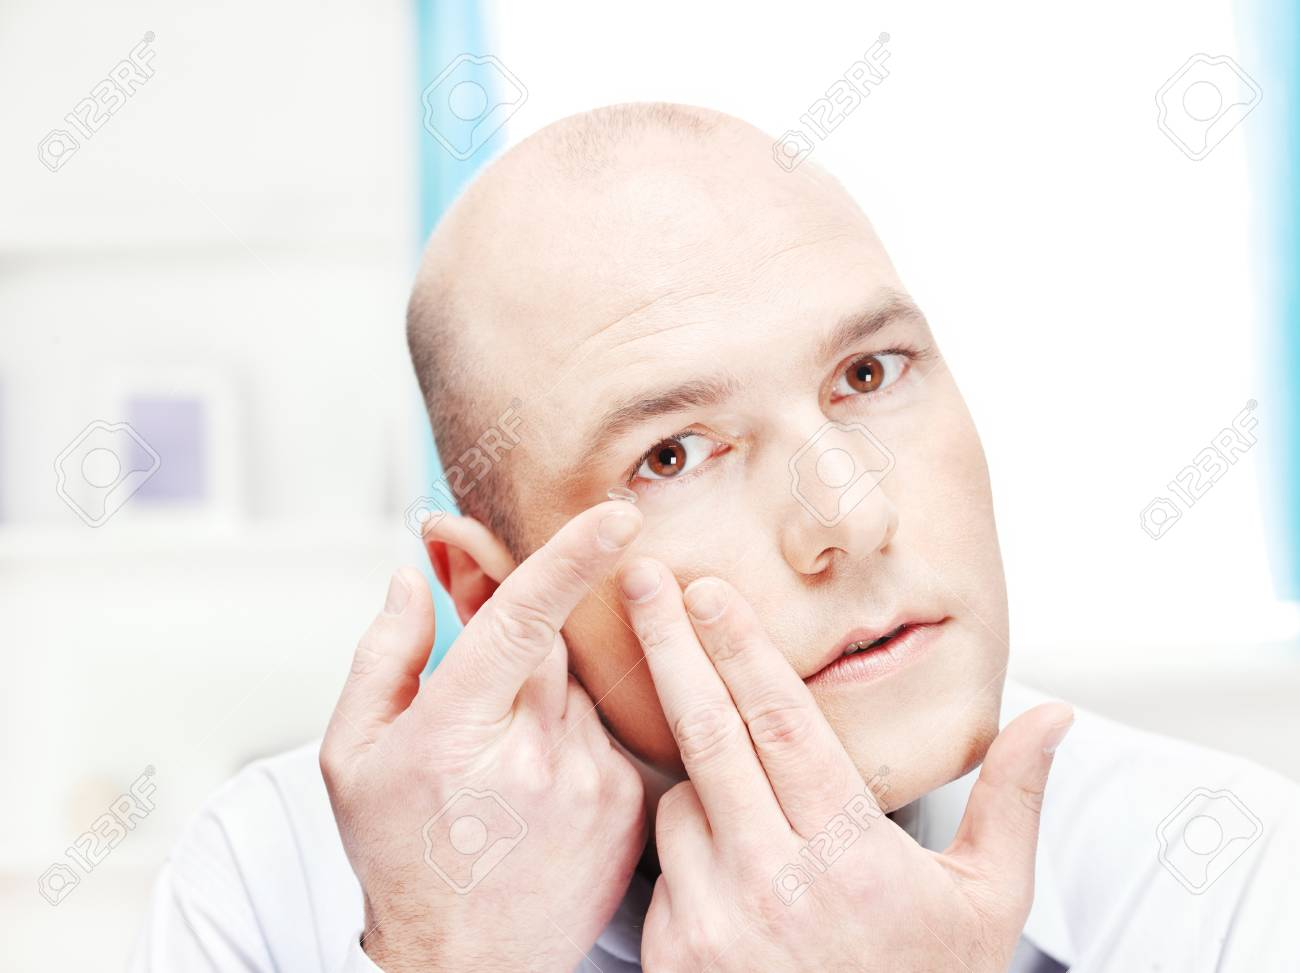 Close up of a man putting contact lens in his eye at home Stock Photo - 13551741